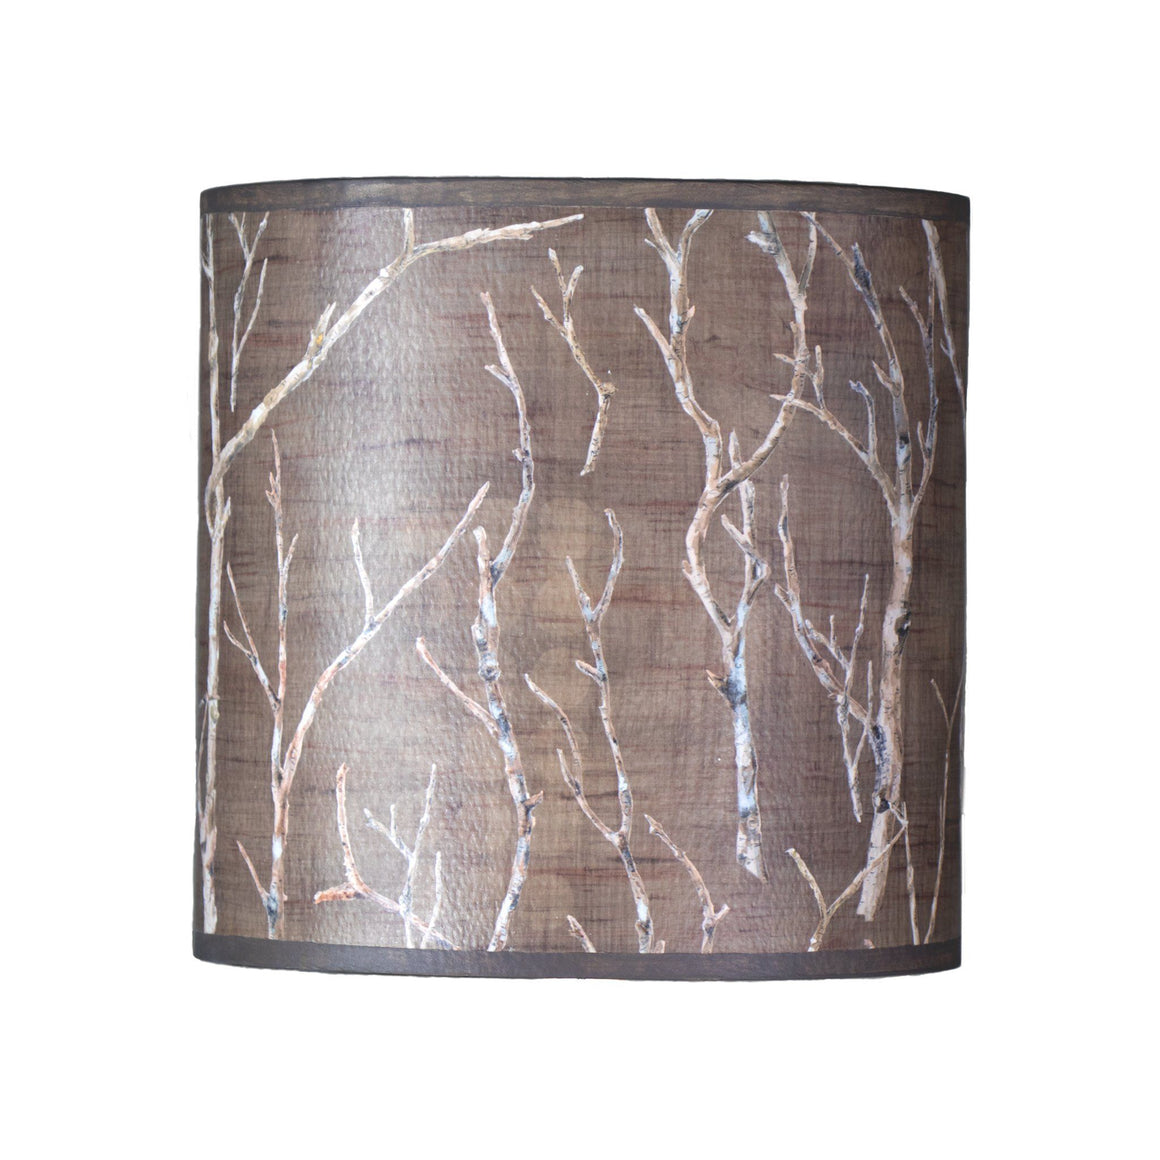 Oval Drum Lamp Shade in Twigs